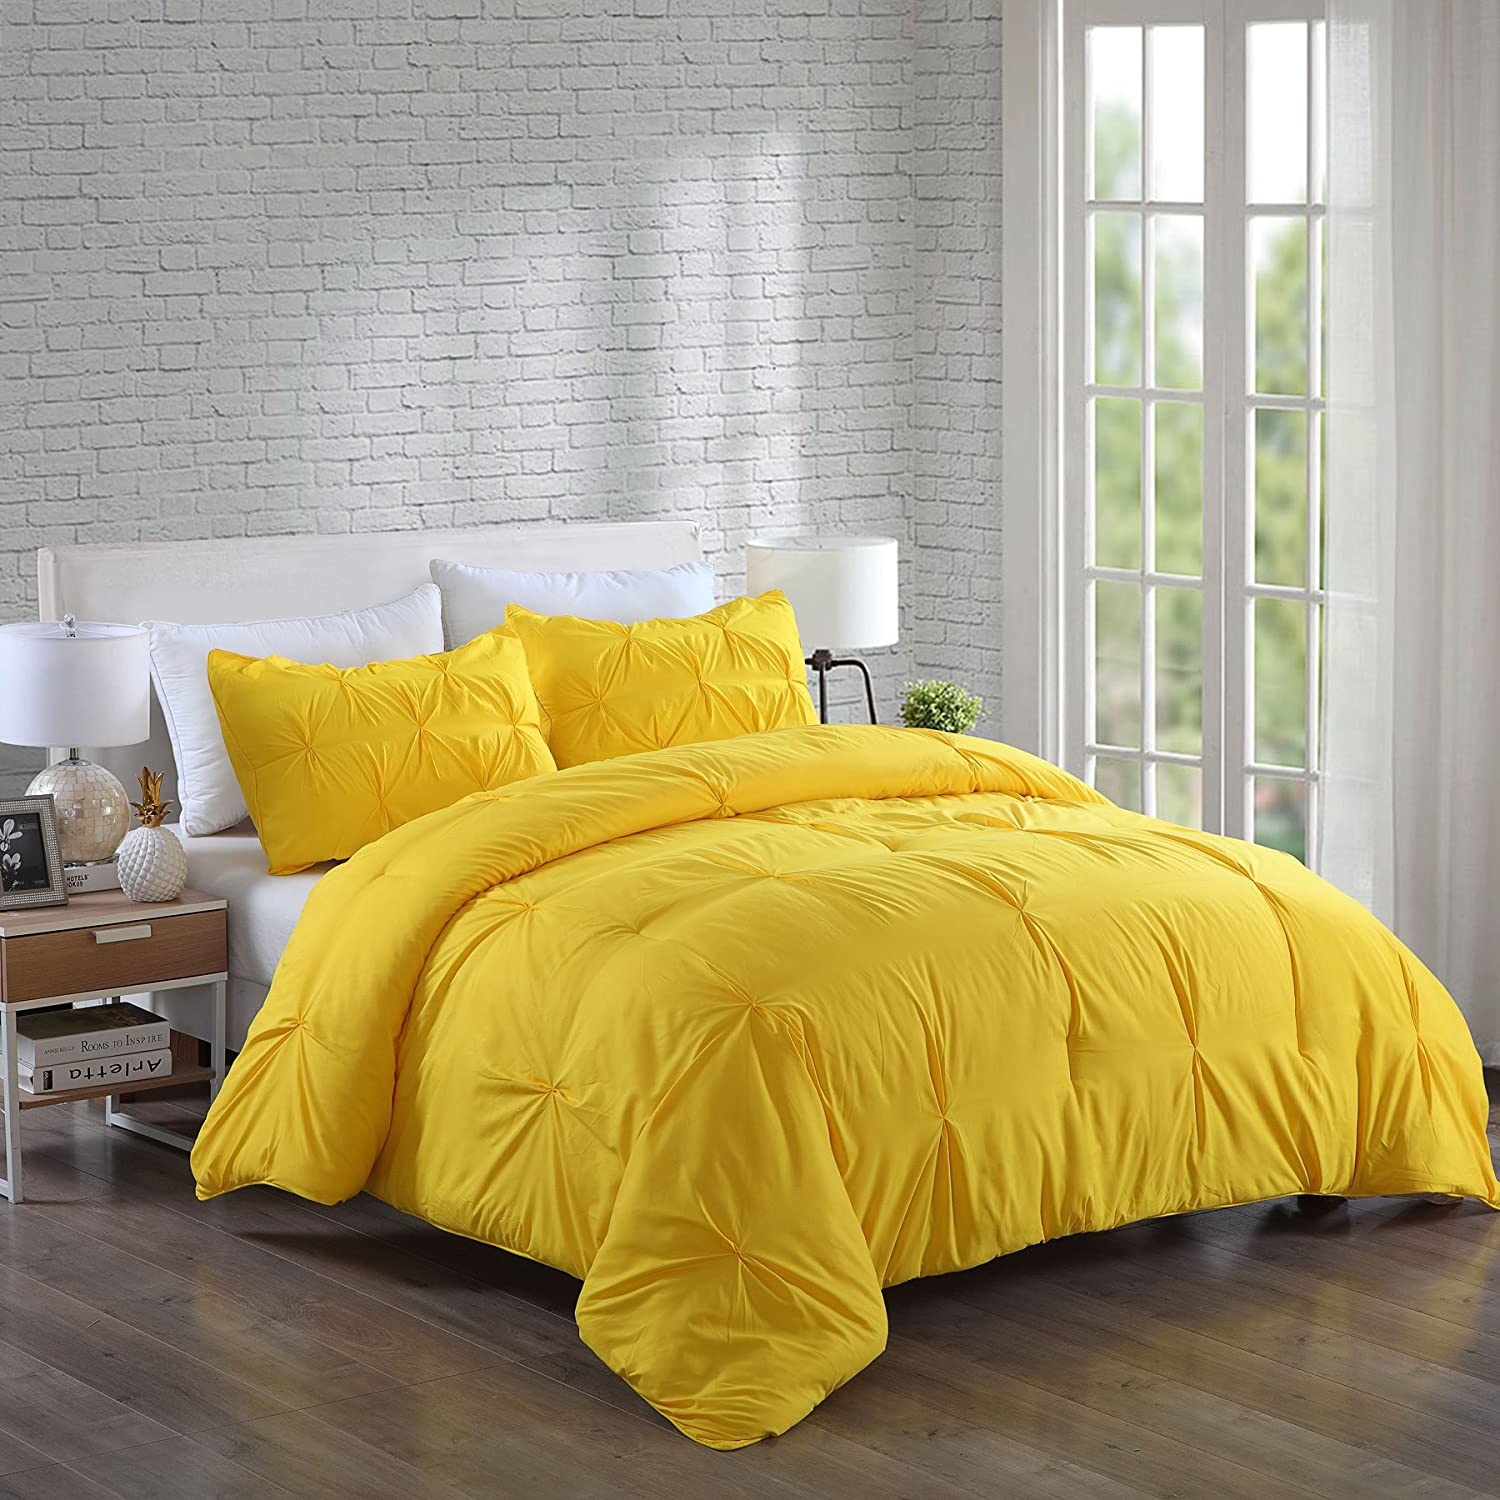 Lotus Home Water and Stain Resistant Pintuck Comforter Set King Yellow